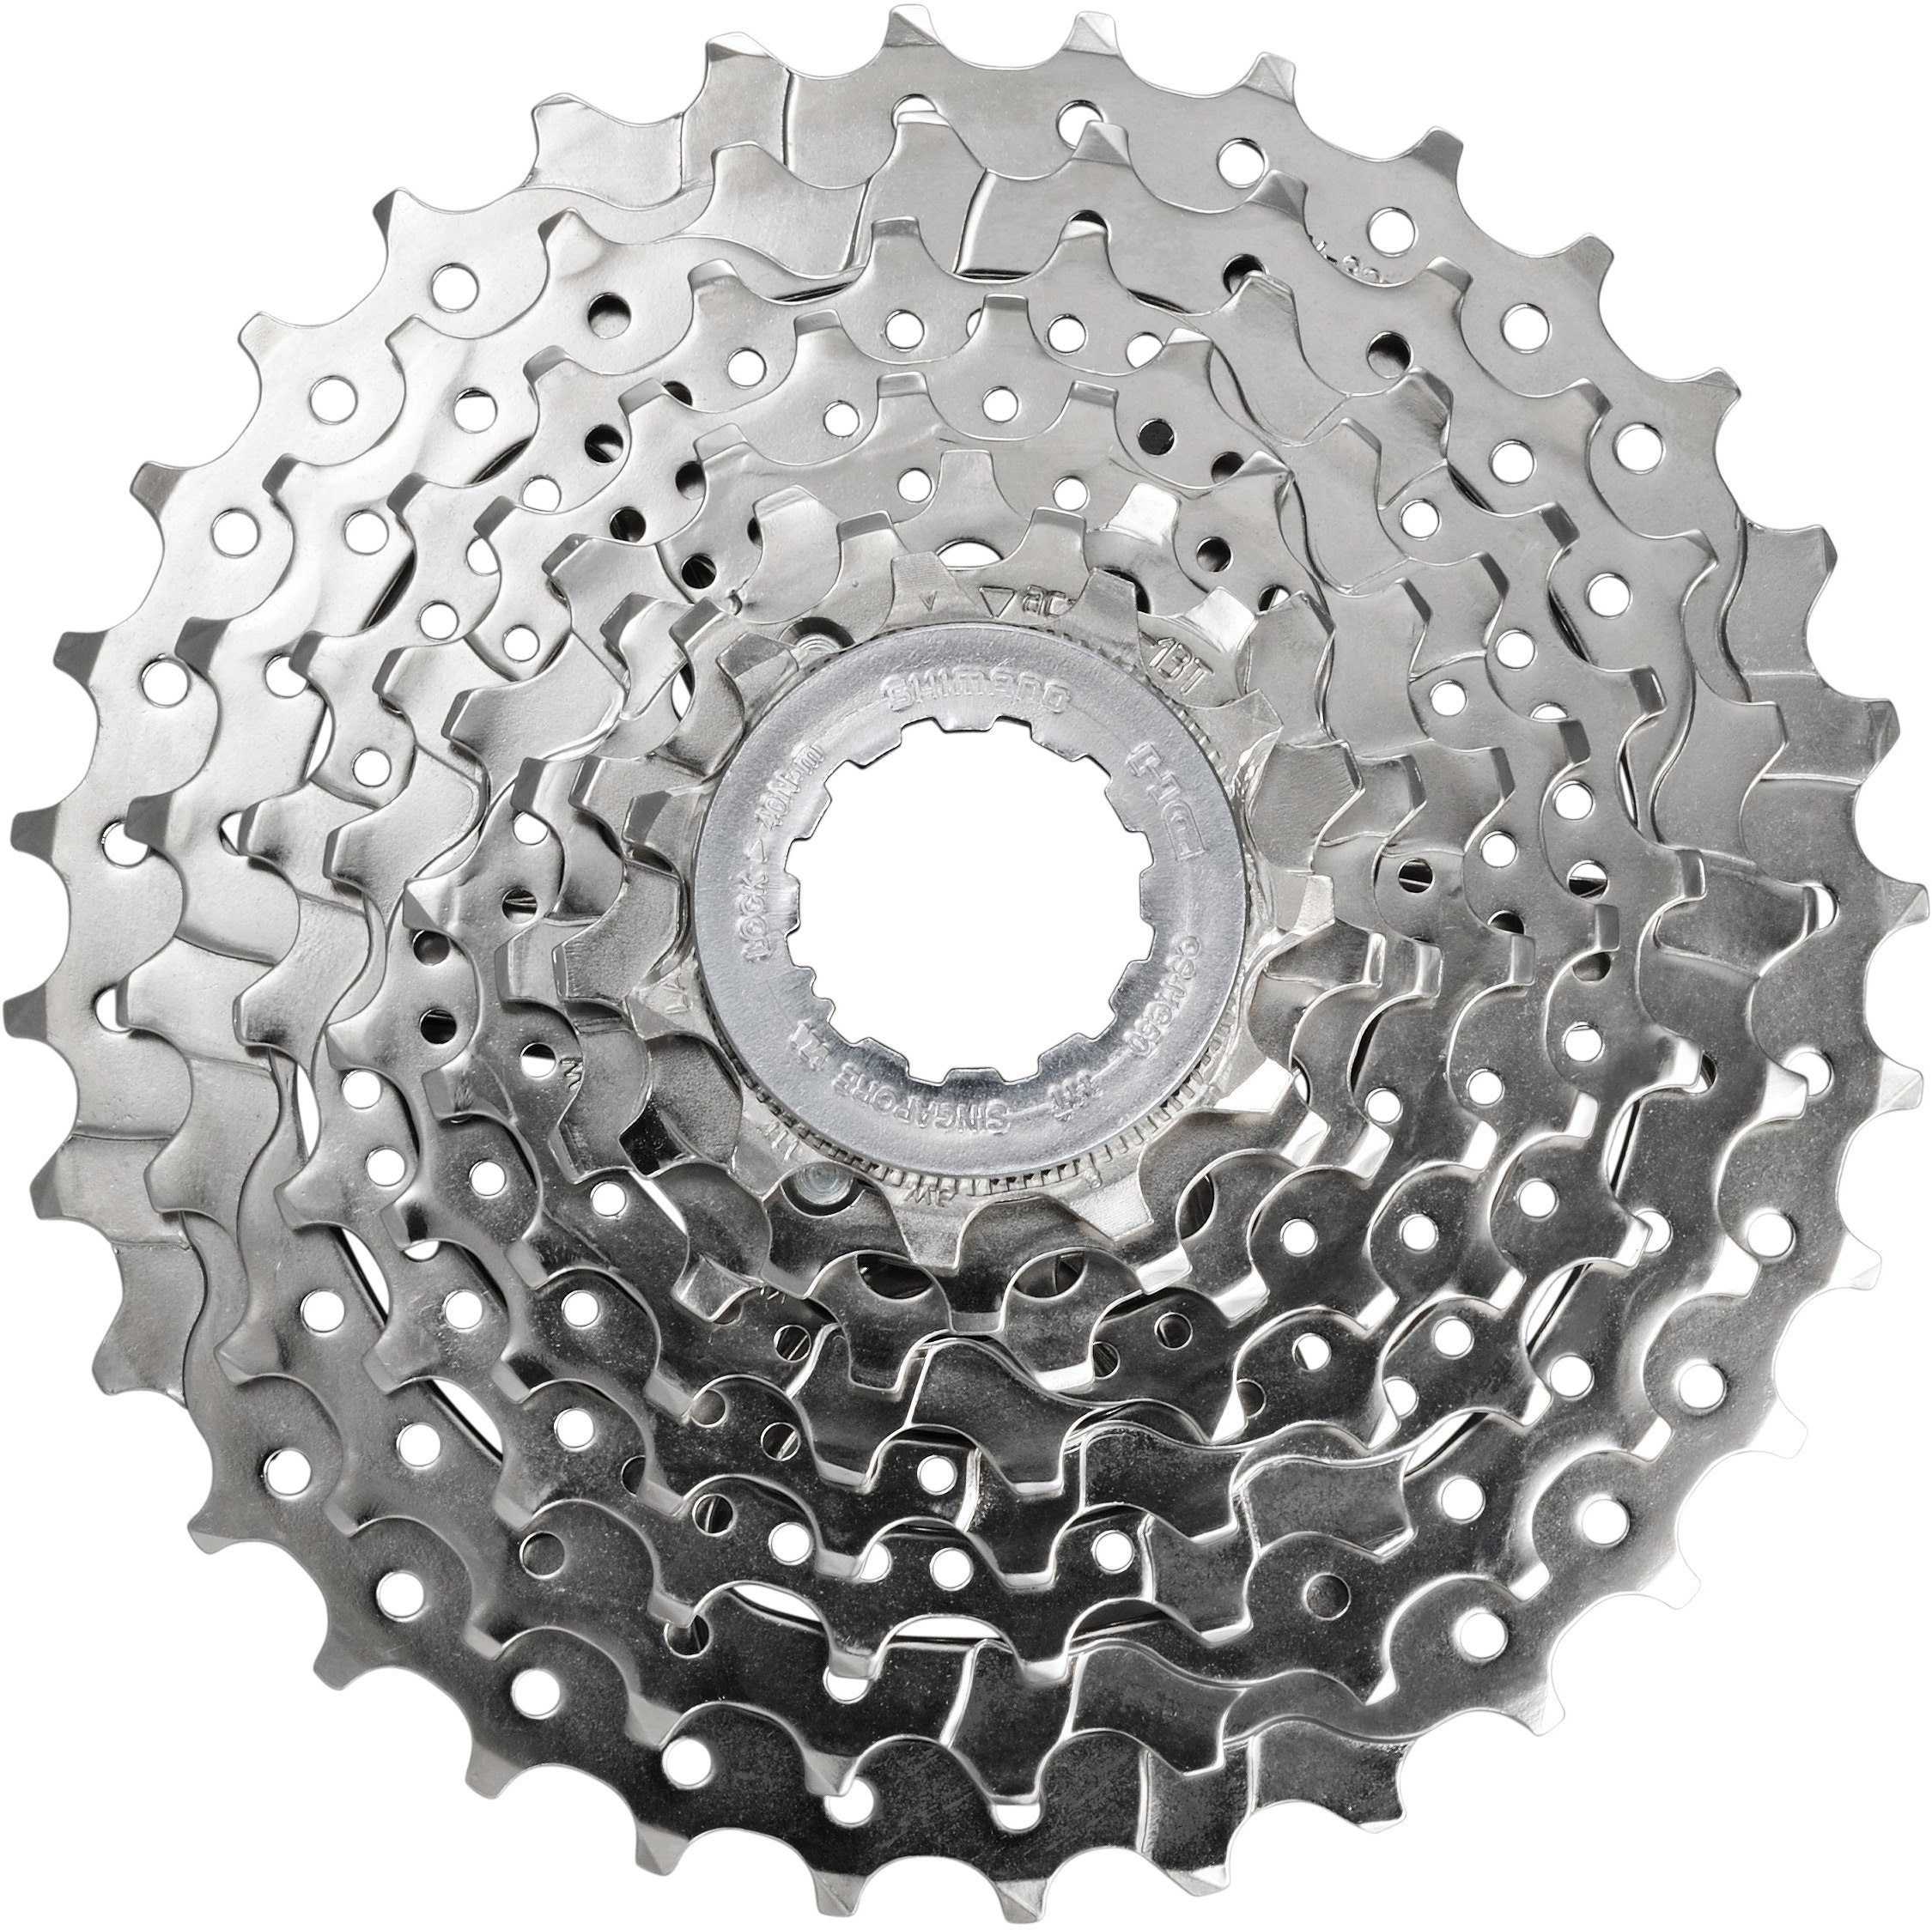 CS-HG50 8-speed cassette 11-34